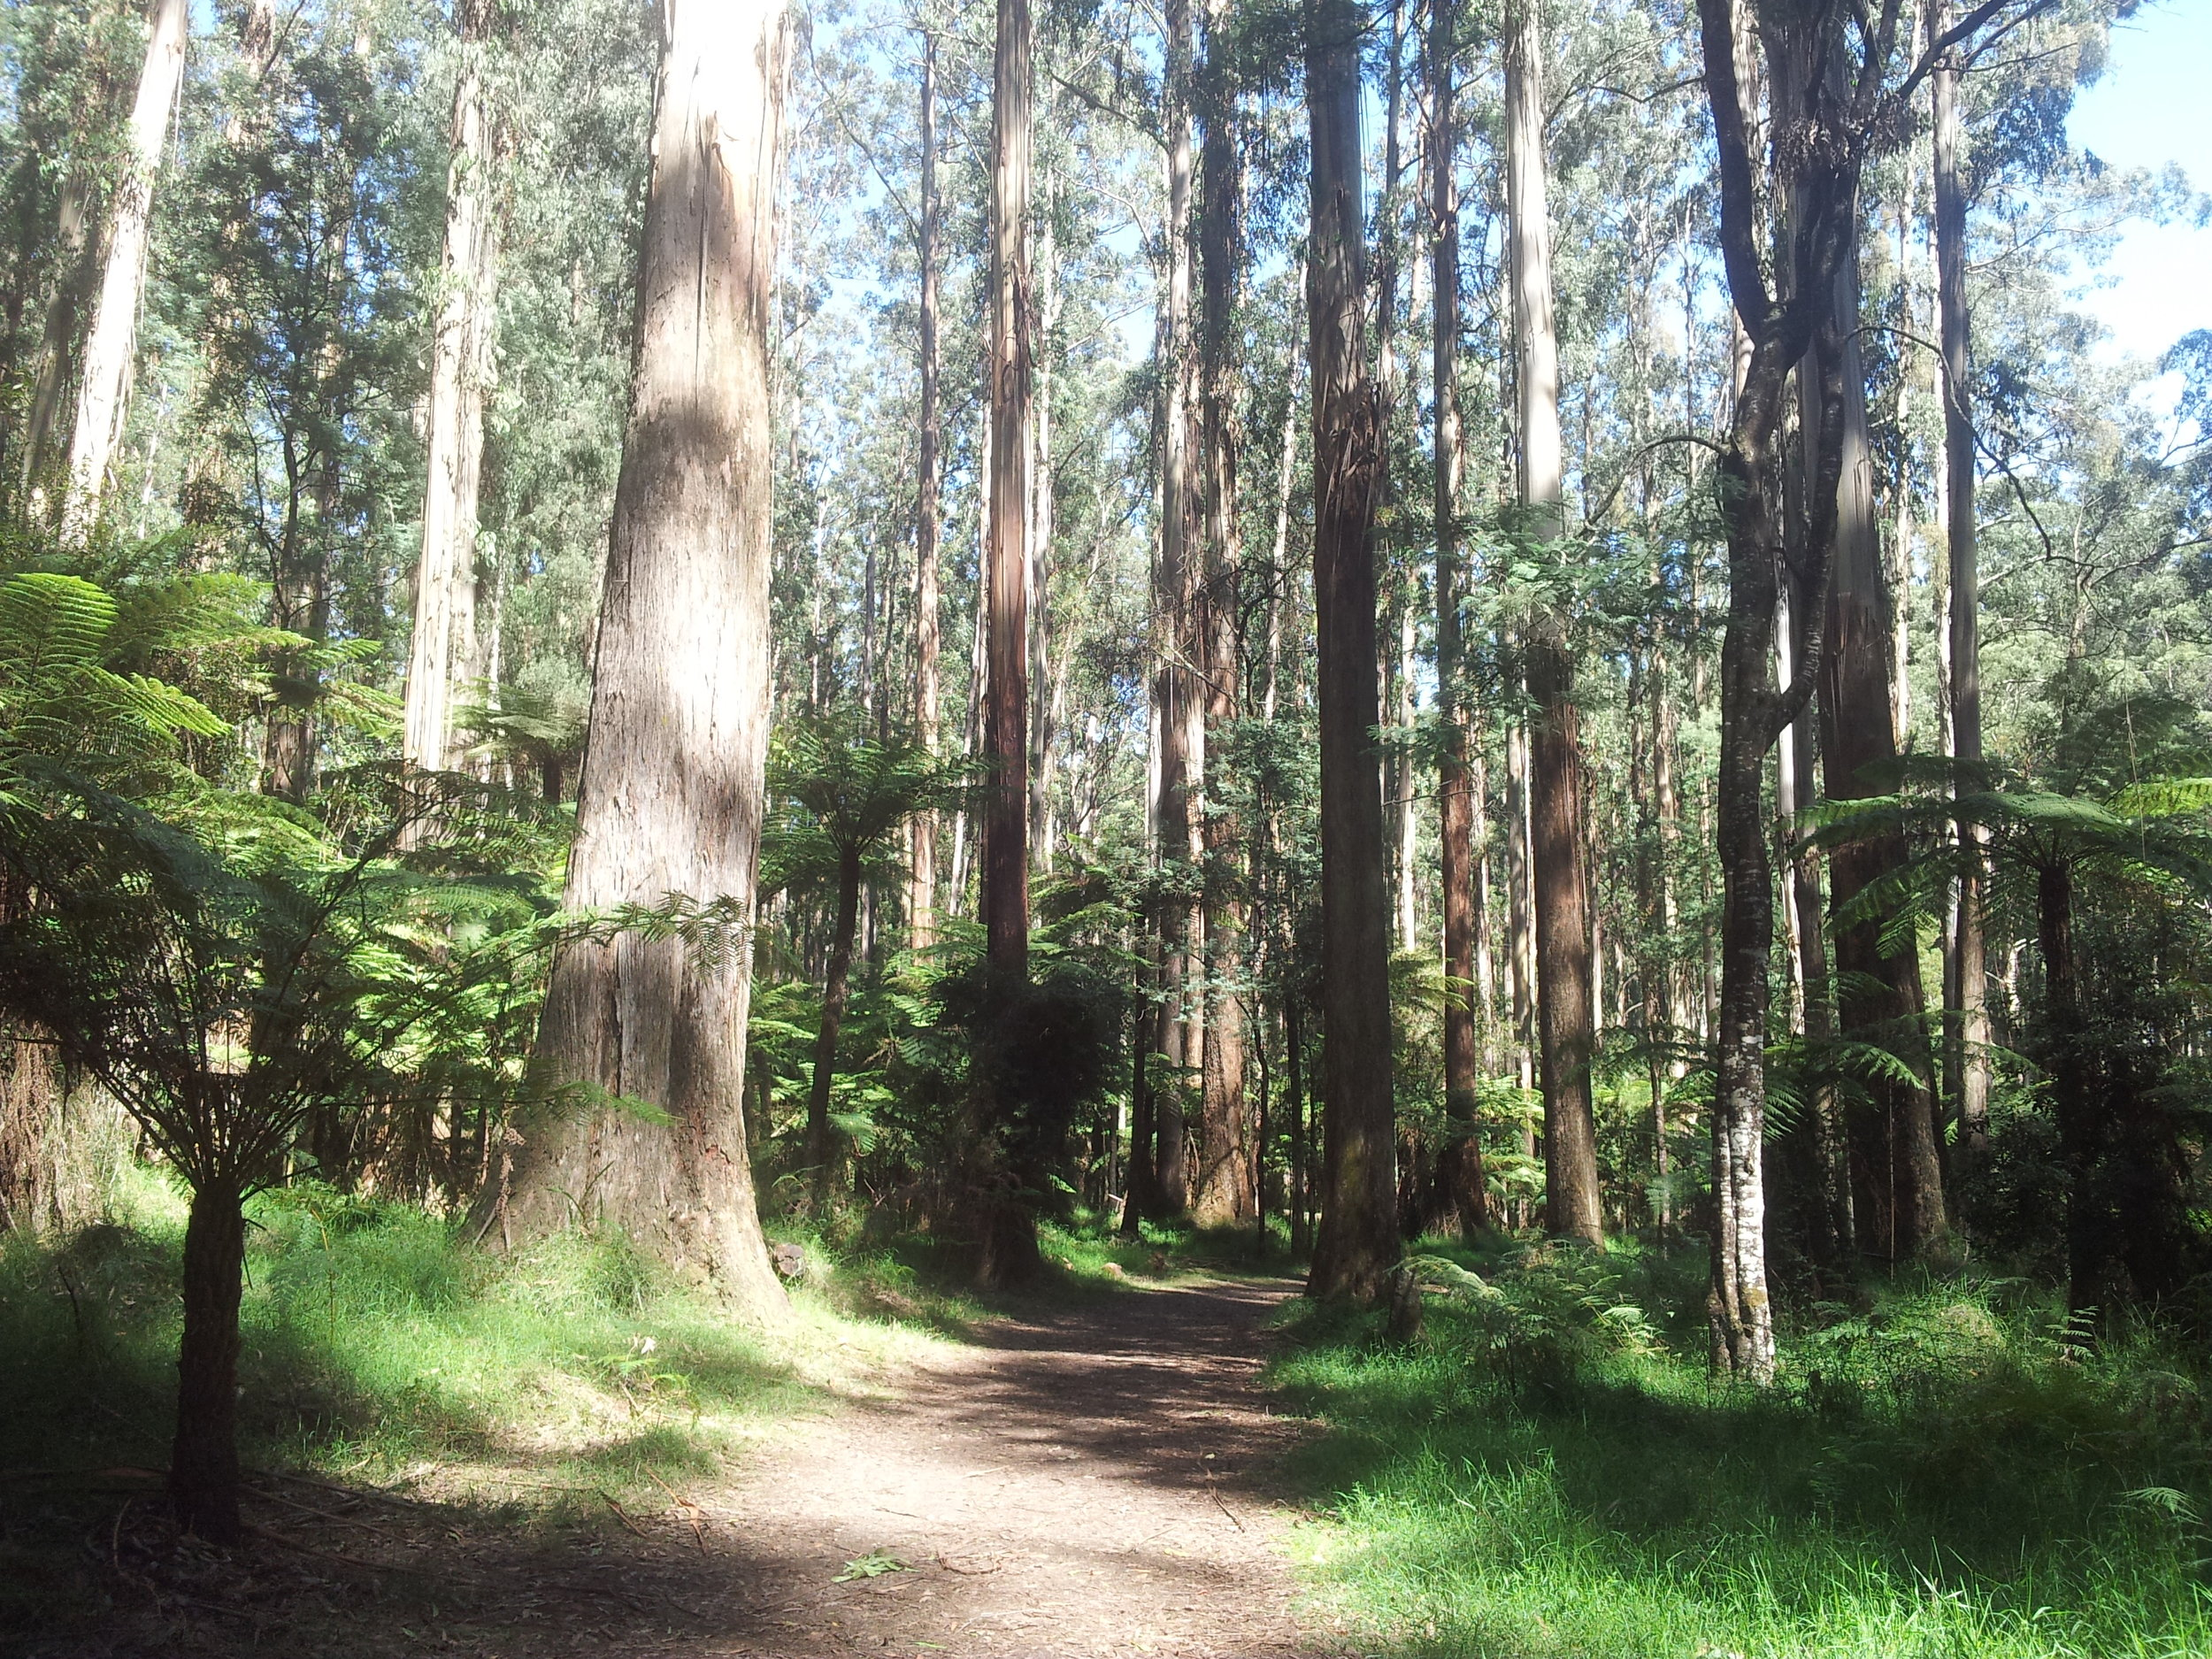 A relaxing walk in the majestic Eucalyptus and Fern Tree Forest